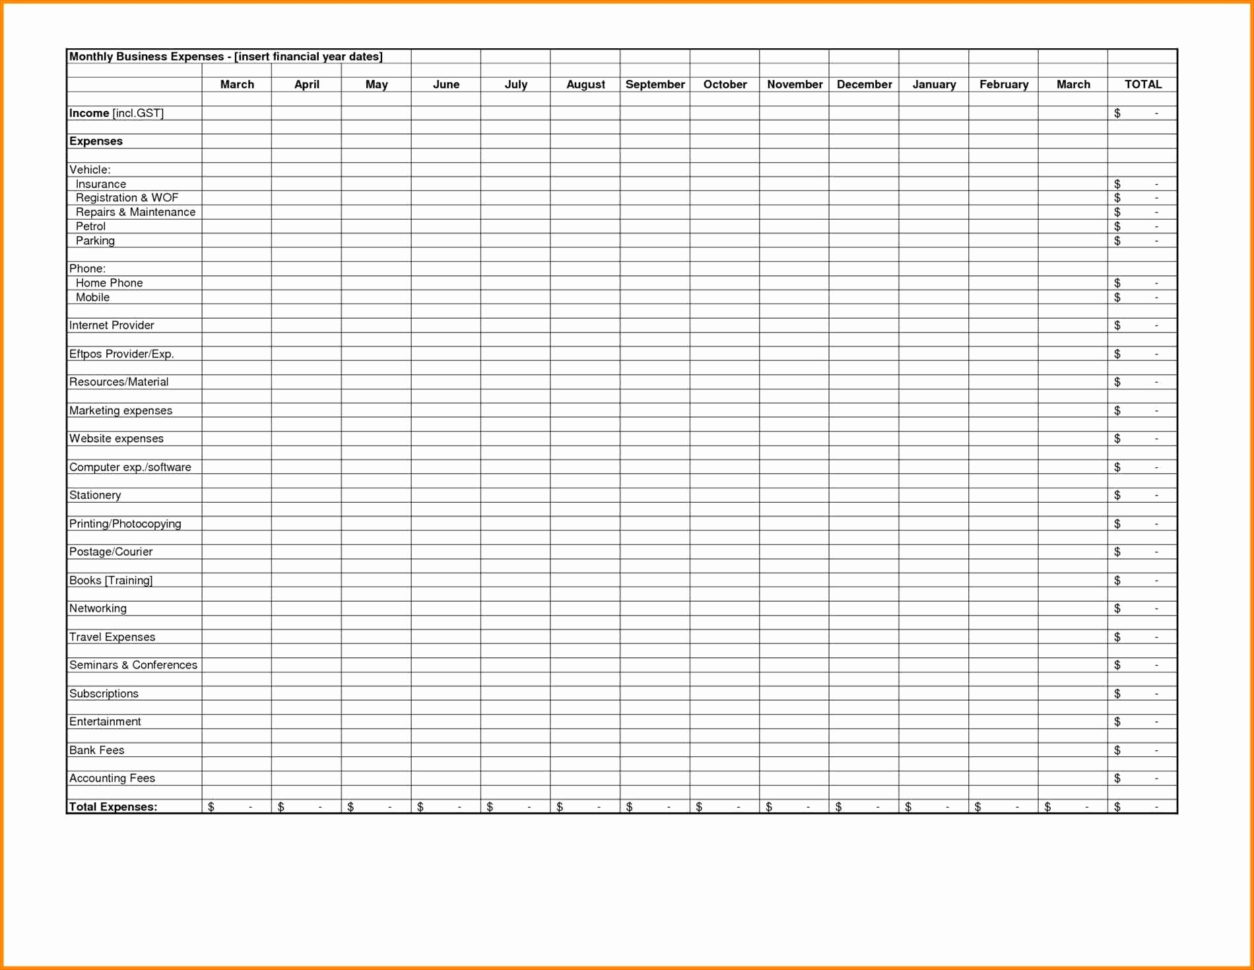 How To Set Up Spreadsheet For Expenses In Excel Spreadsheet For Business Expenses Template Income And Small